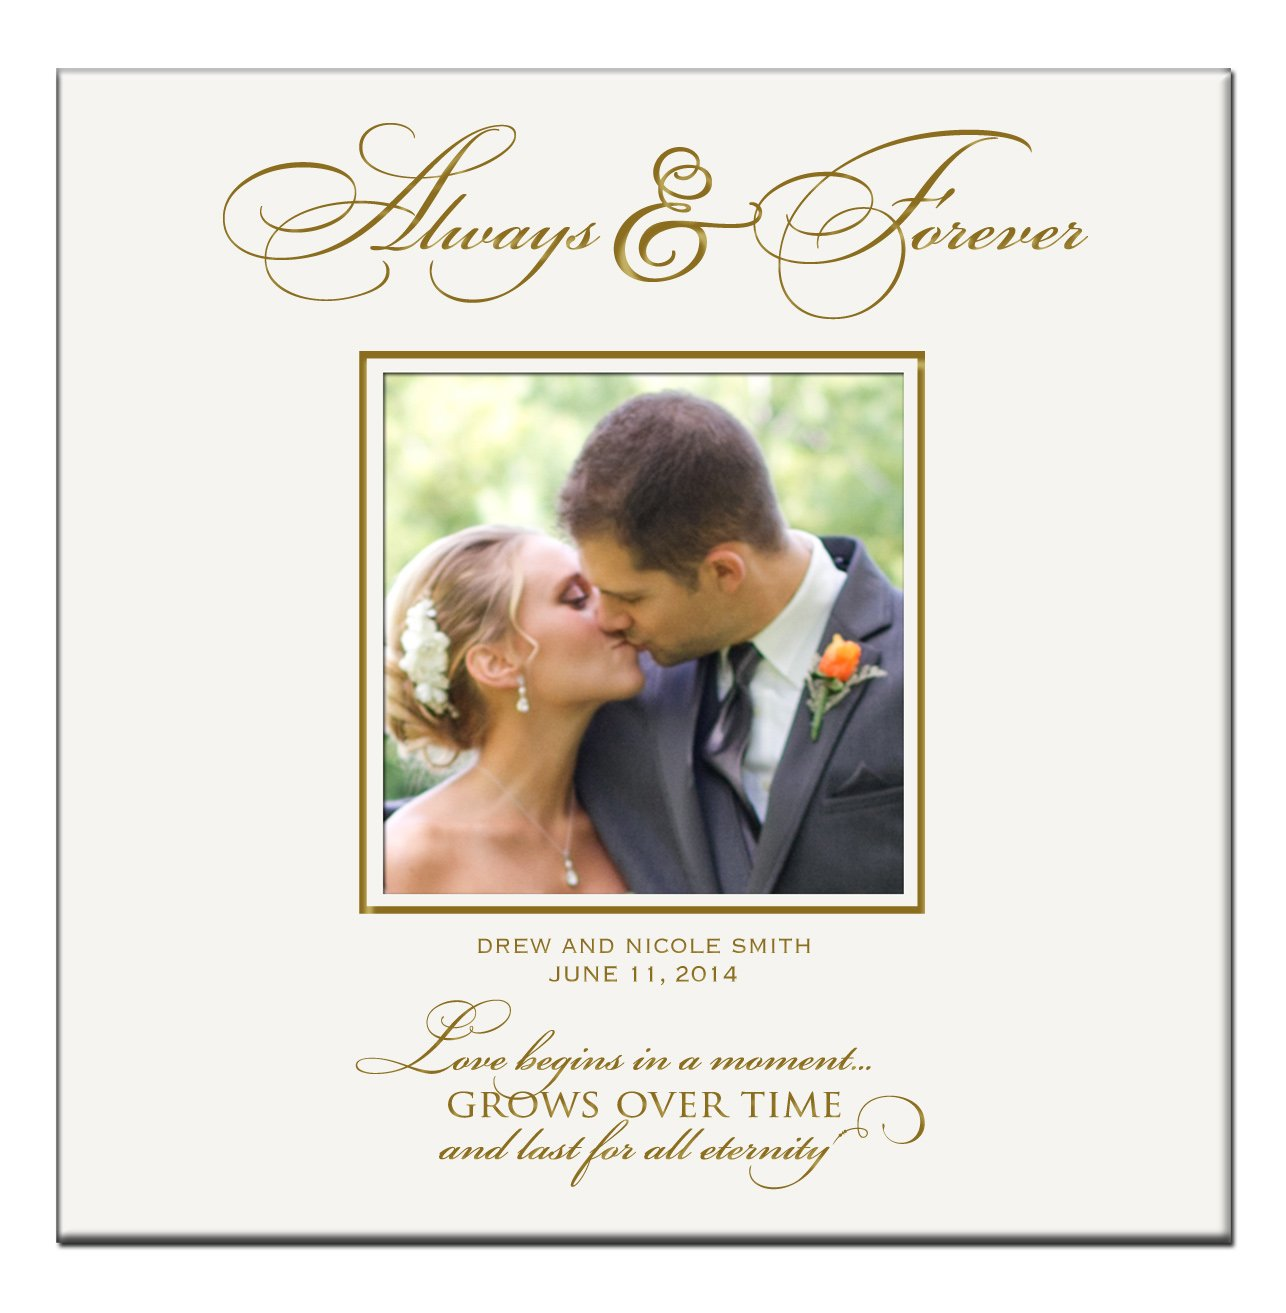 Personalized Wedding Anniversary Photo Albums Gifts Always & Forever Love Begins in a Moment Holds 200 4x6 Photos